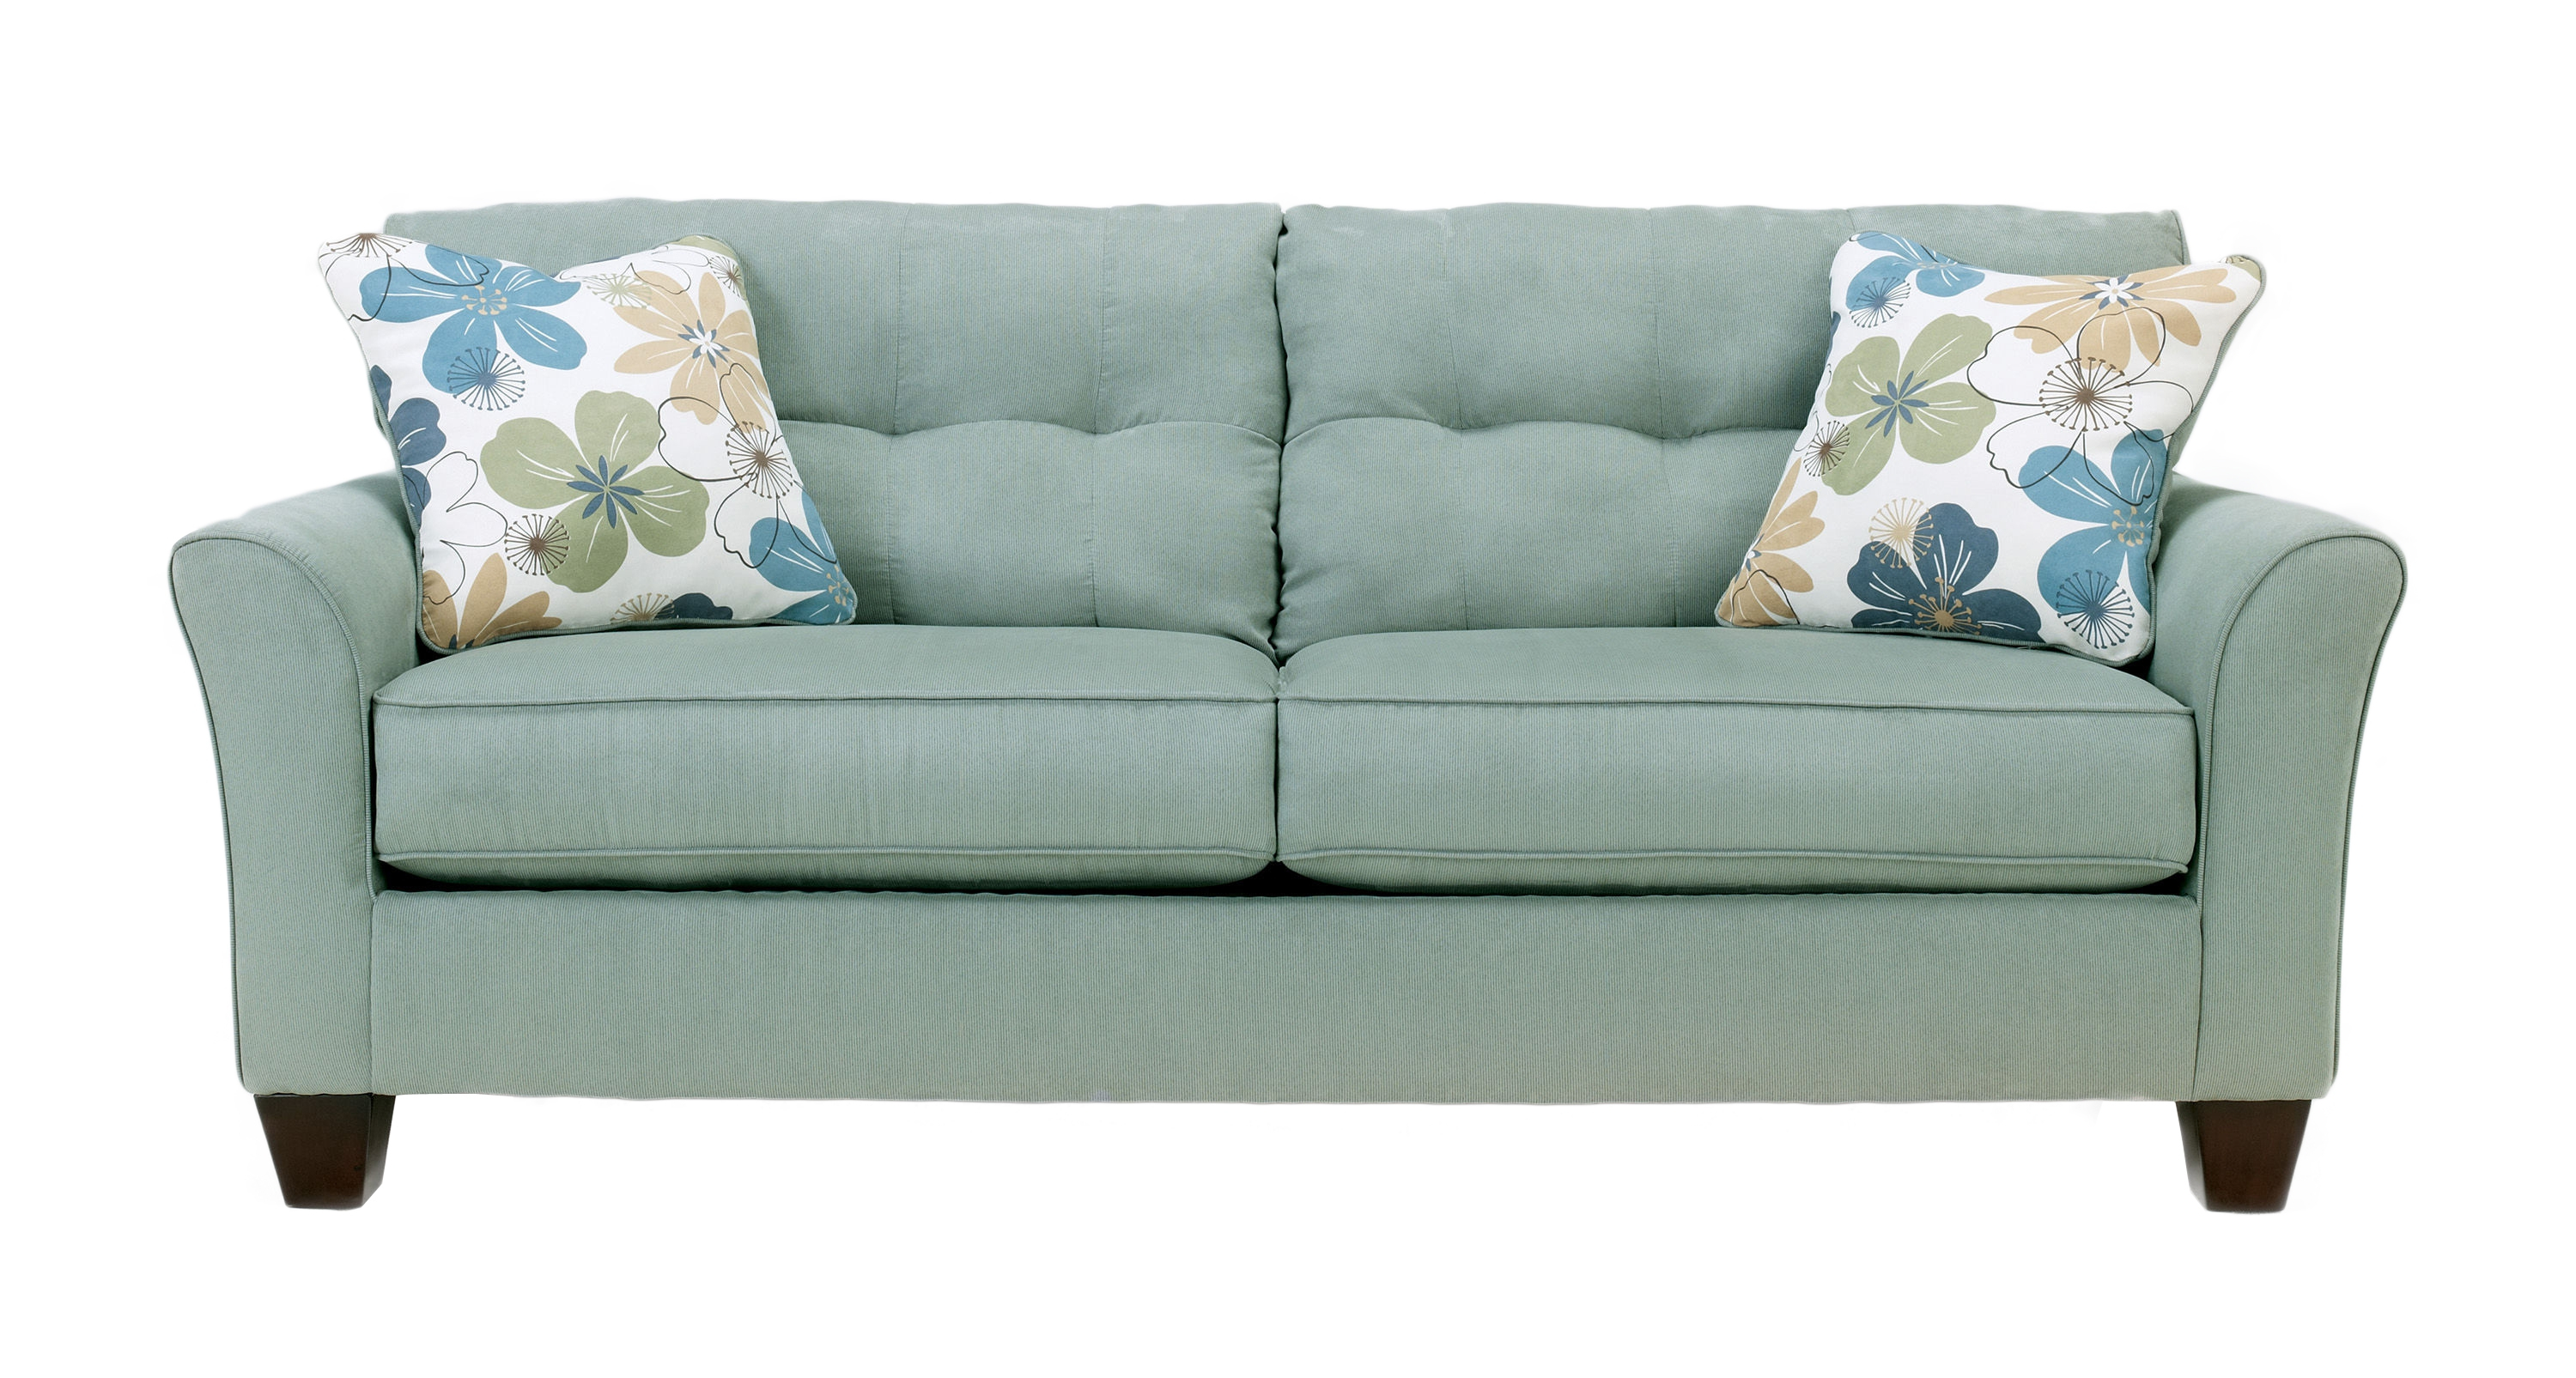 Kylee Contemporary Lagoon Fabric Sofa Wpillow Back The Classy Home inside Kylee Lagoon Living Room Set